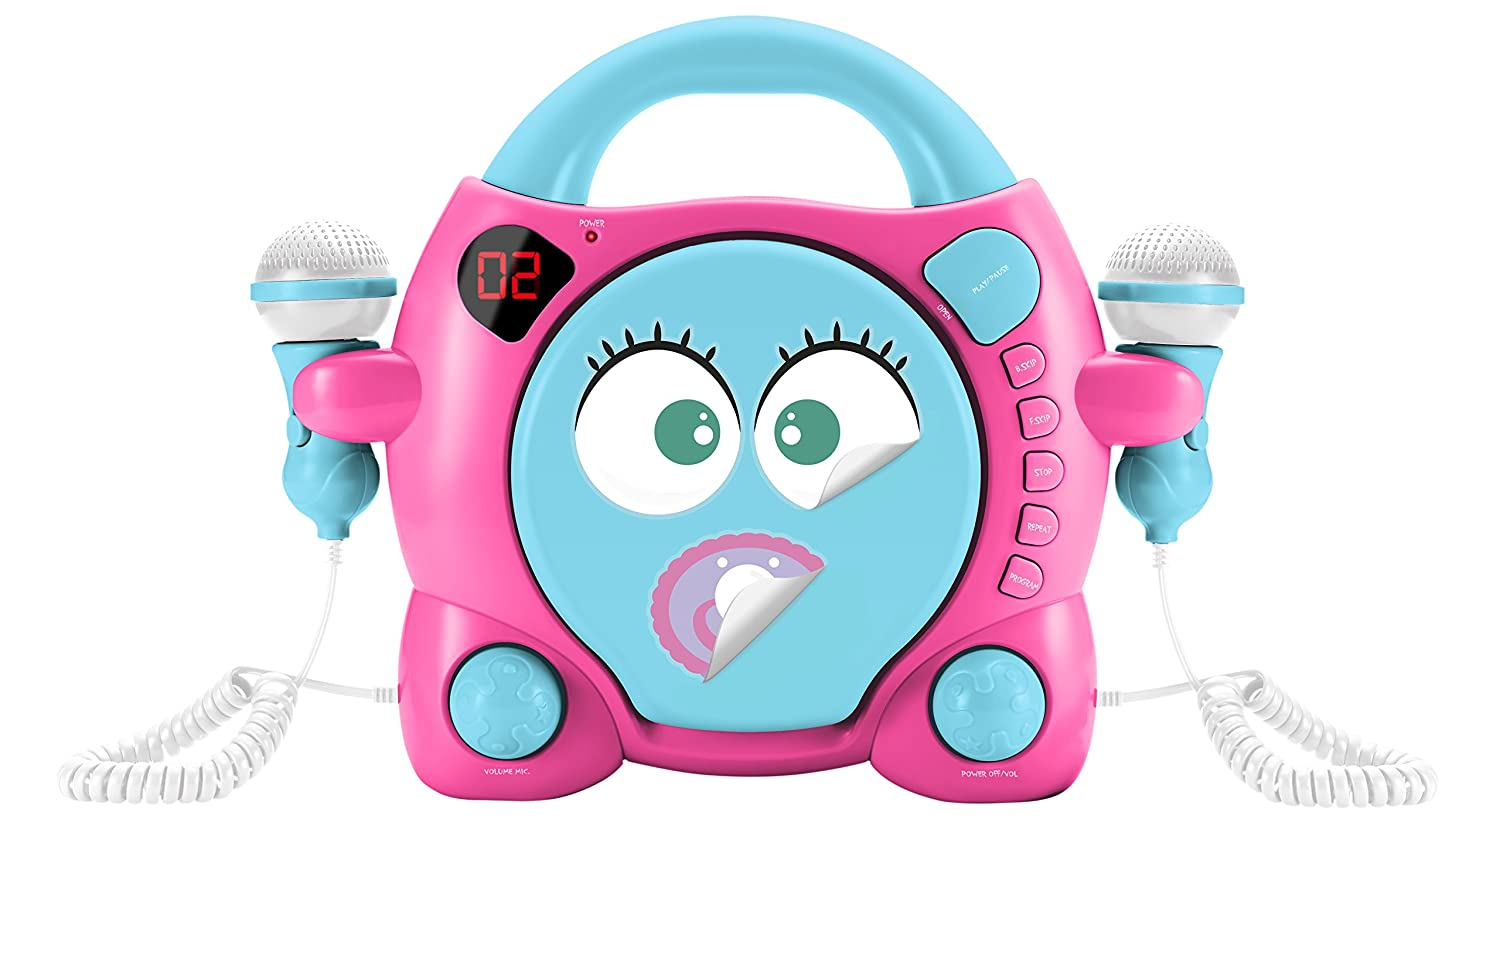 BigBen Interactive My MIA - Reproductor de CD con 2 micró fonos y 5 pá ginas de Stickers (LED, Conector de Auriculares, Funciones de repetició n y Programa, Volumen CD/Micro) Rosa y Azul Funciones de repetición y Programa CD59GIRLSSTIC